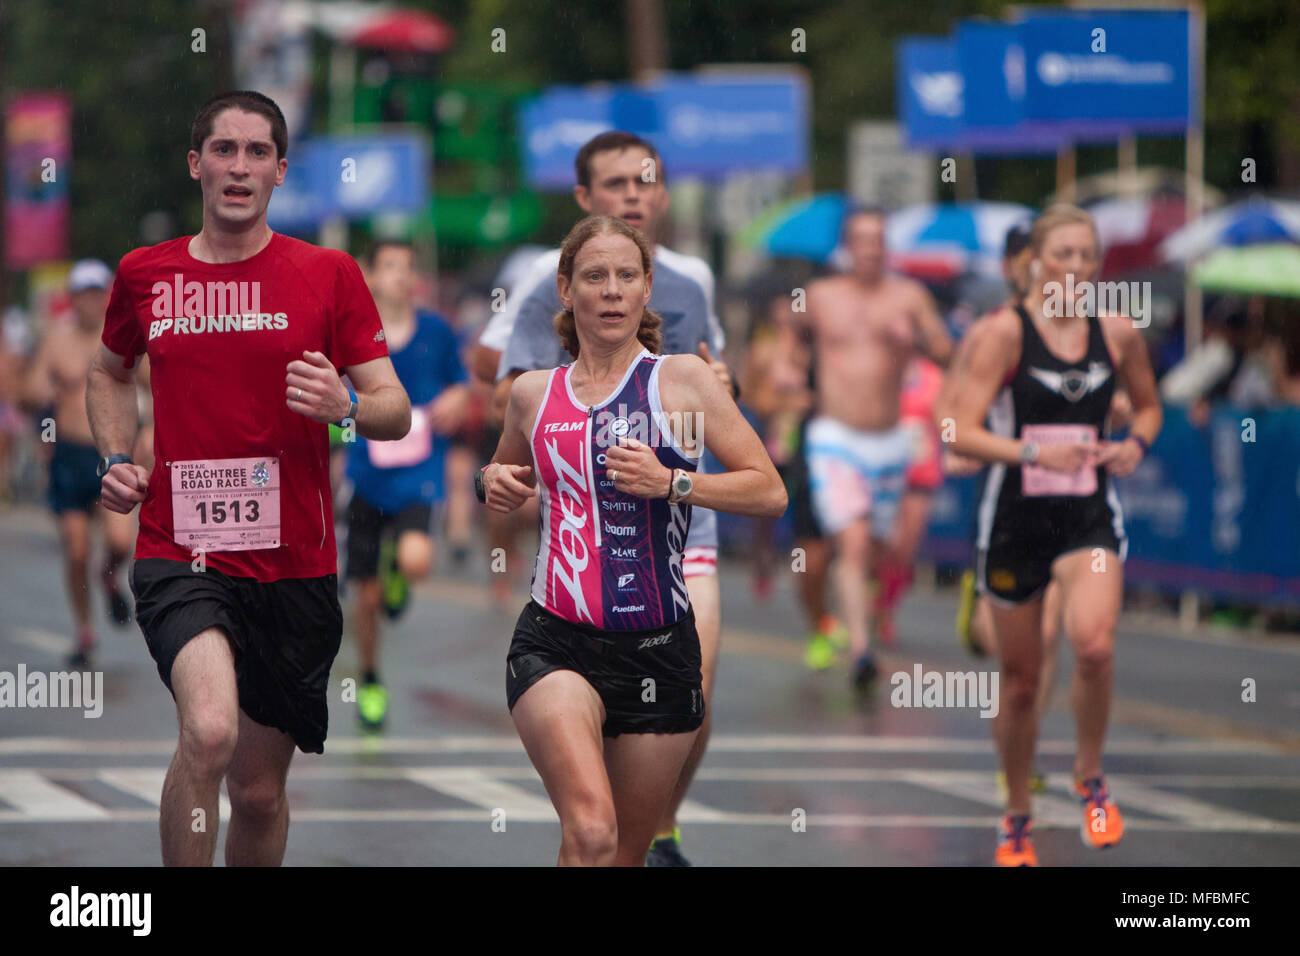 Tired runners push for the finish line in the rain, at the 46th running of the Peachtree Road Race 10K on July 4, 2015 in Atlanta, GA. - Stock Image